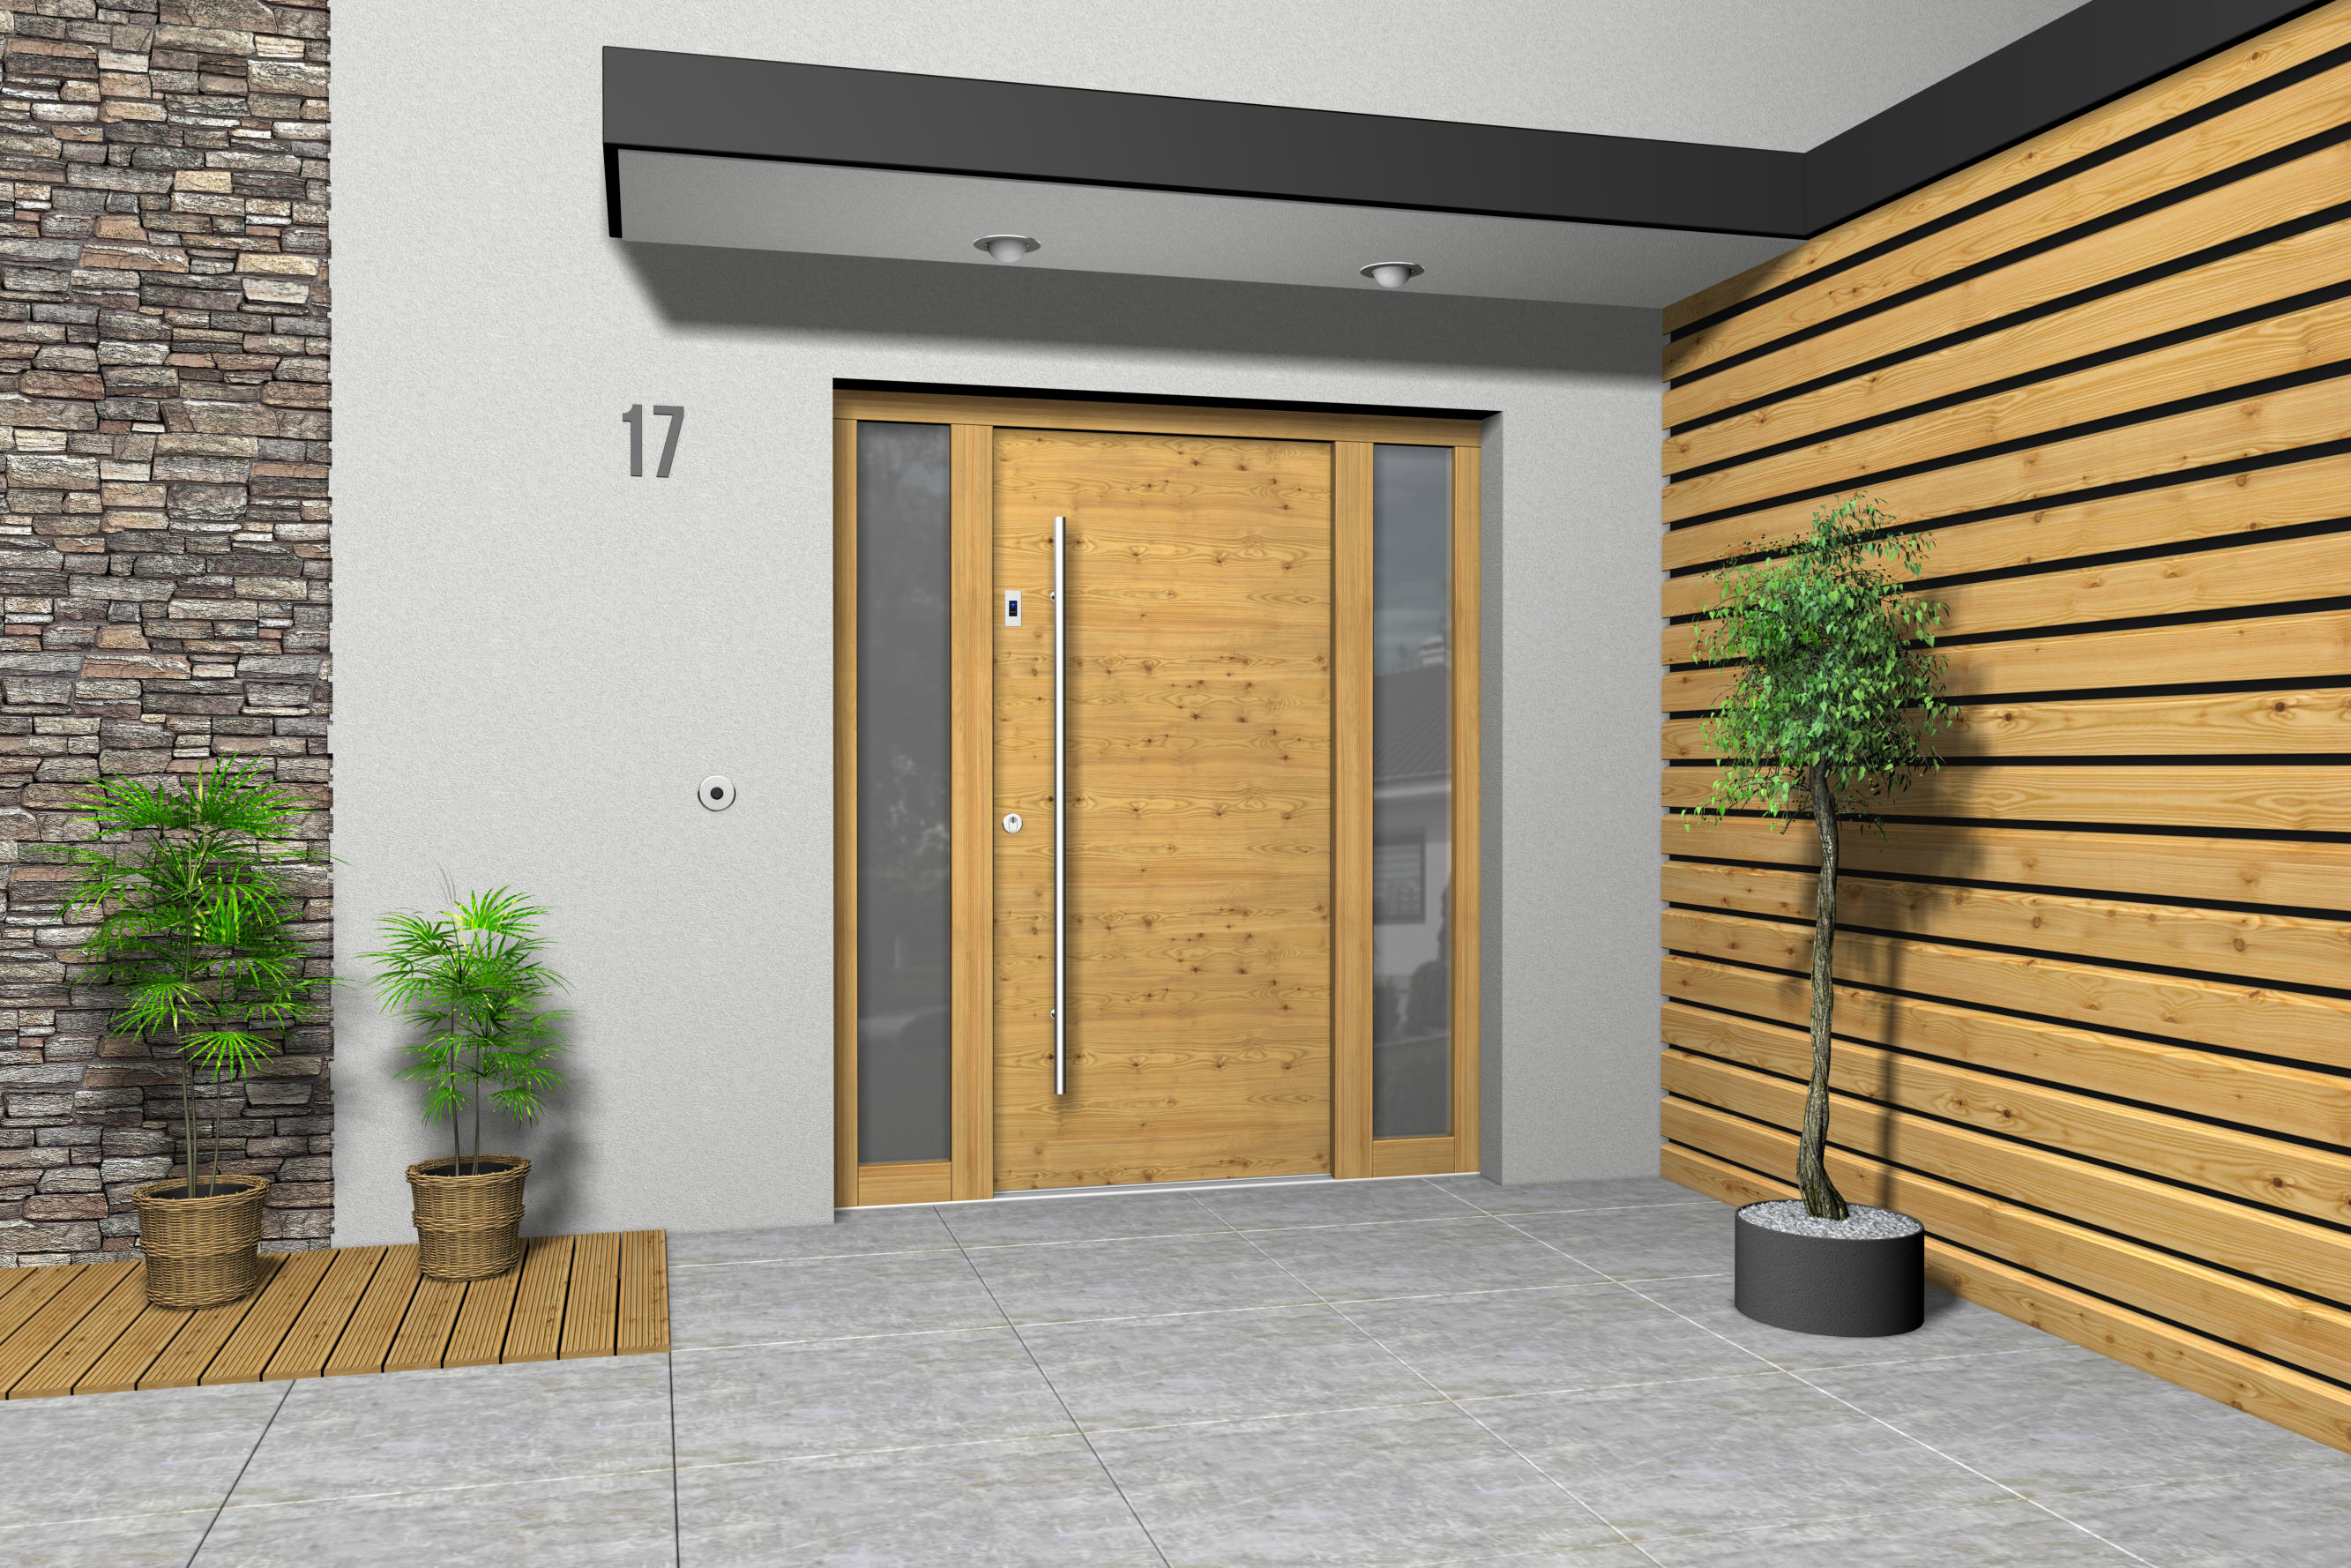 Haustüren holz modern  Haustüren Holz Exclusiv - KS-Hausbau24